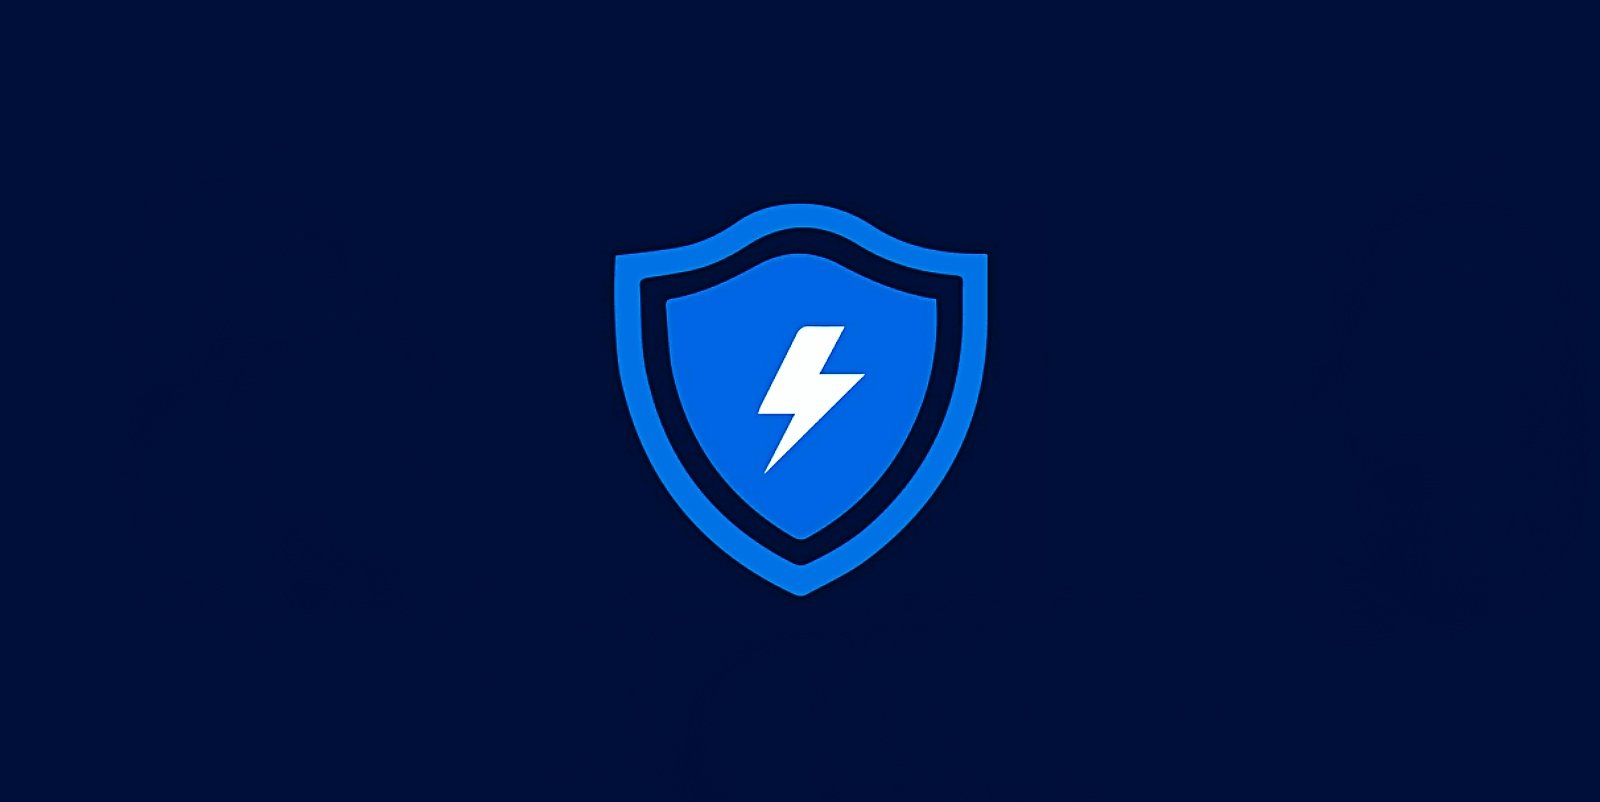 Microsoft Defender To Enable Full Auto-Remediation By Default